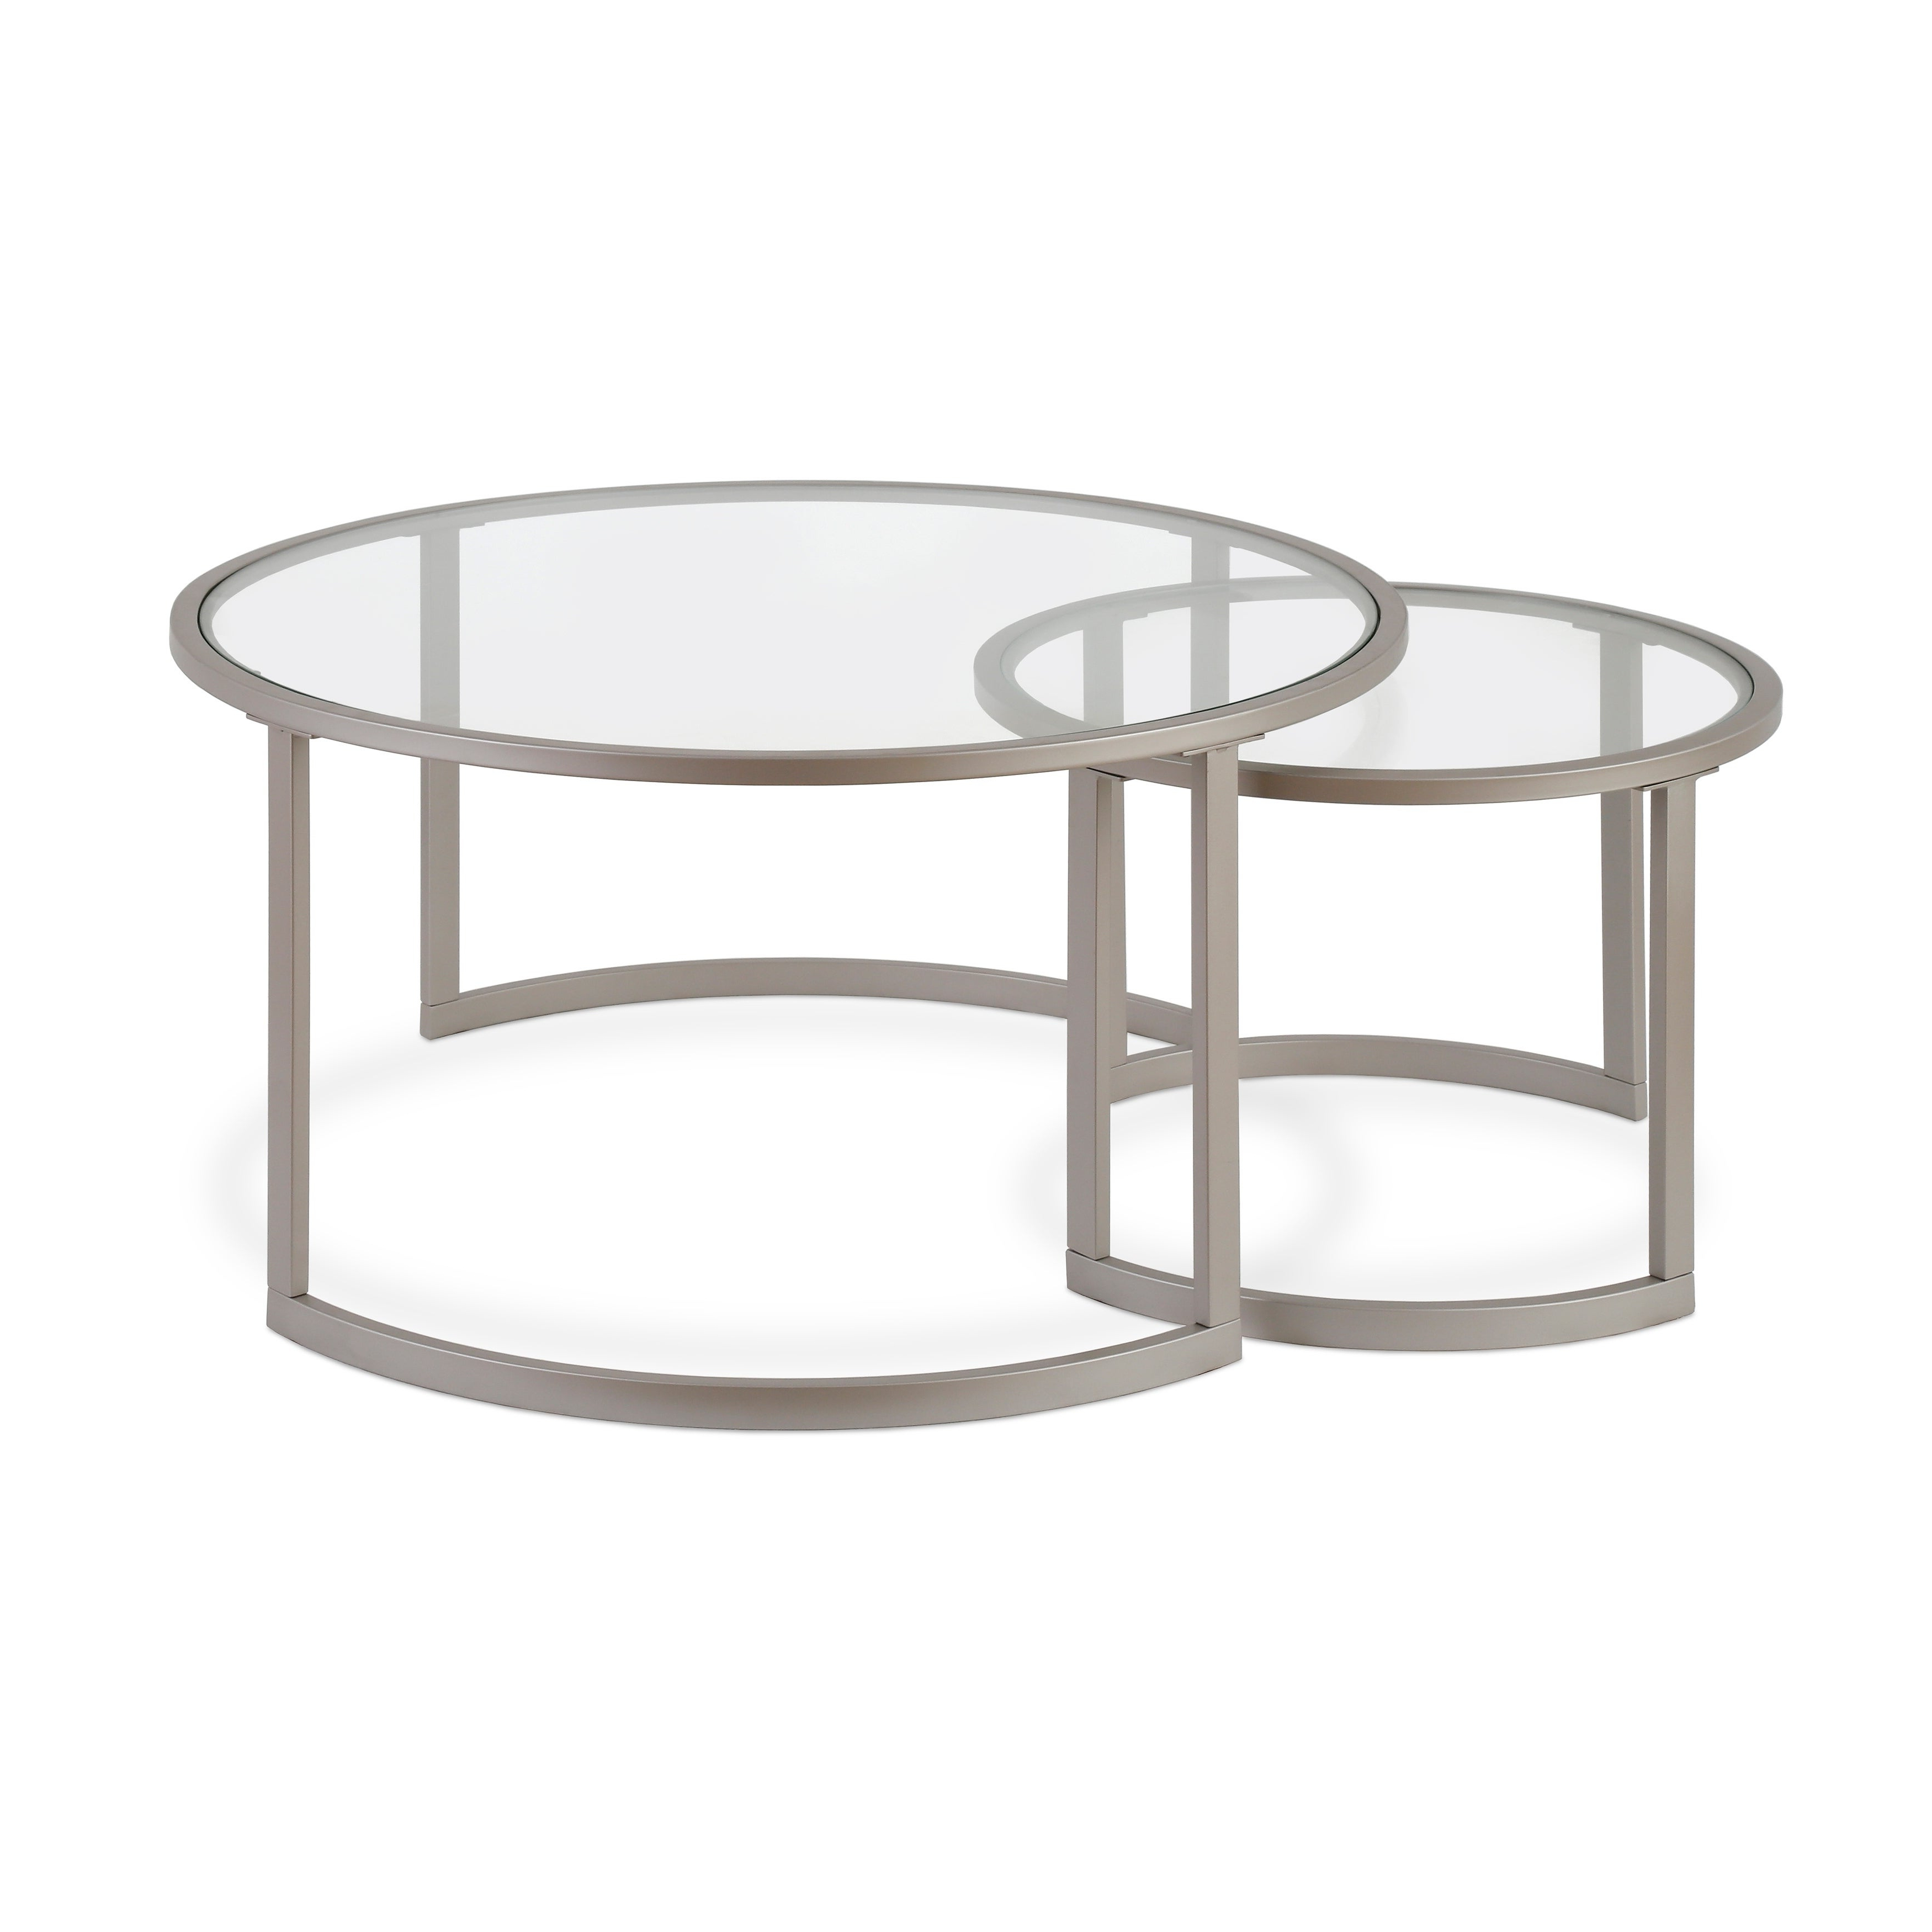 Mitera Round Metal/glass Nesting Coffee Tables Set Of 2 (Optional Finishes) Inside Well Known Mitera Round Metal Glass Nesting Coffee Tables (View 9 of 20)